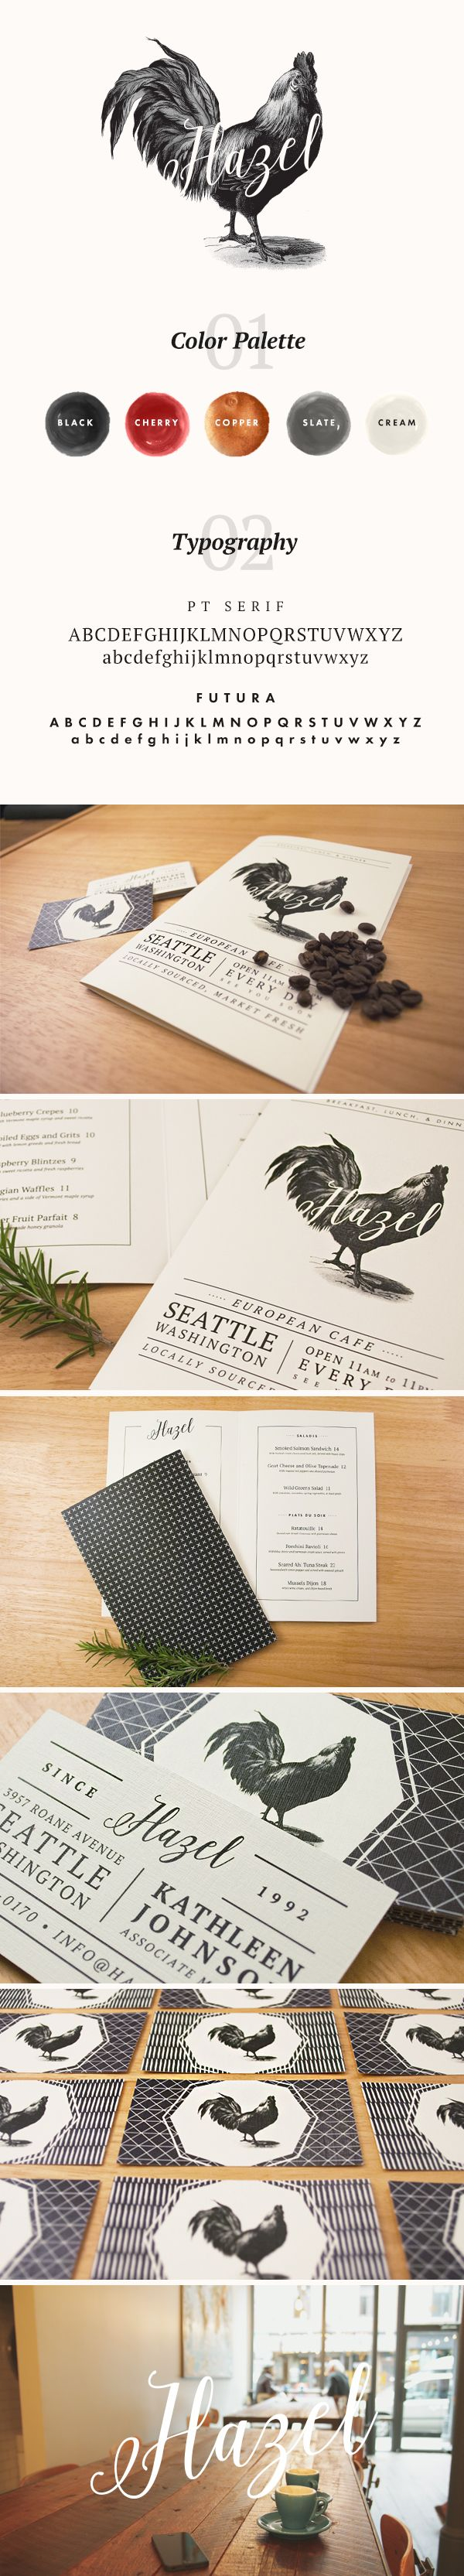 Hazel Branding by Nikki Clark | Check out more great content at: www.emrld14.com